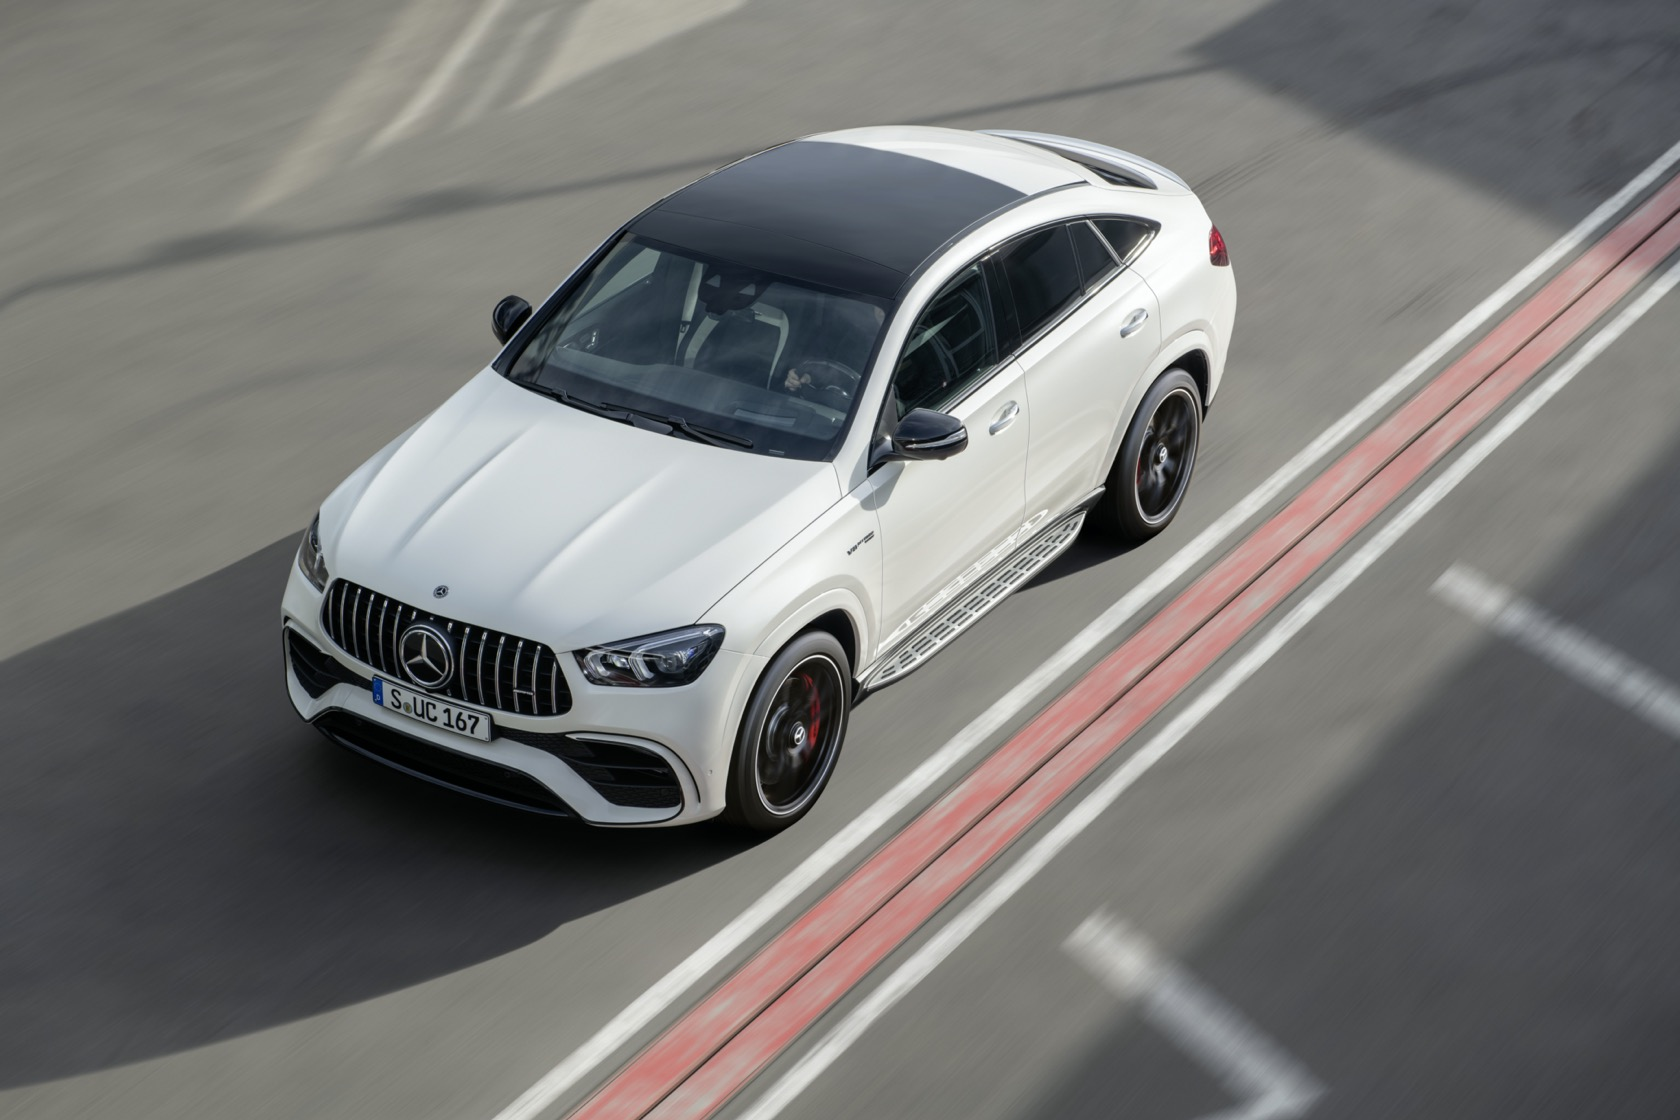 2021 Mercedes-AMG GLE 63 S Coupe is a 174mph reminder that SUVs aren't dull - SlashGear